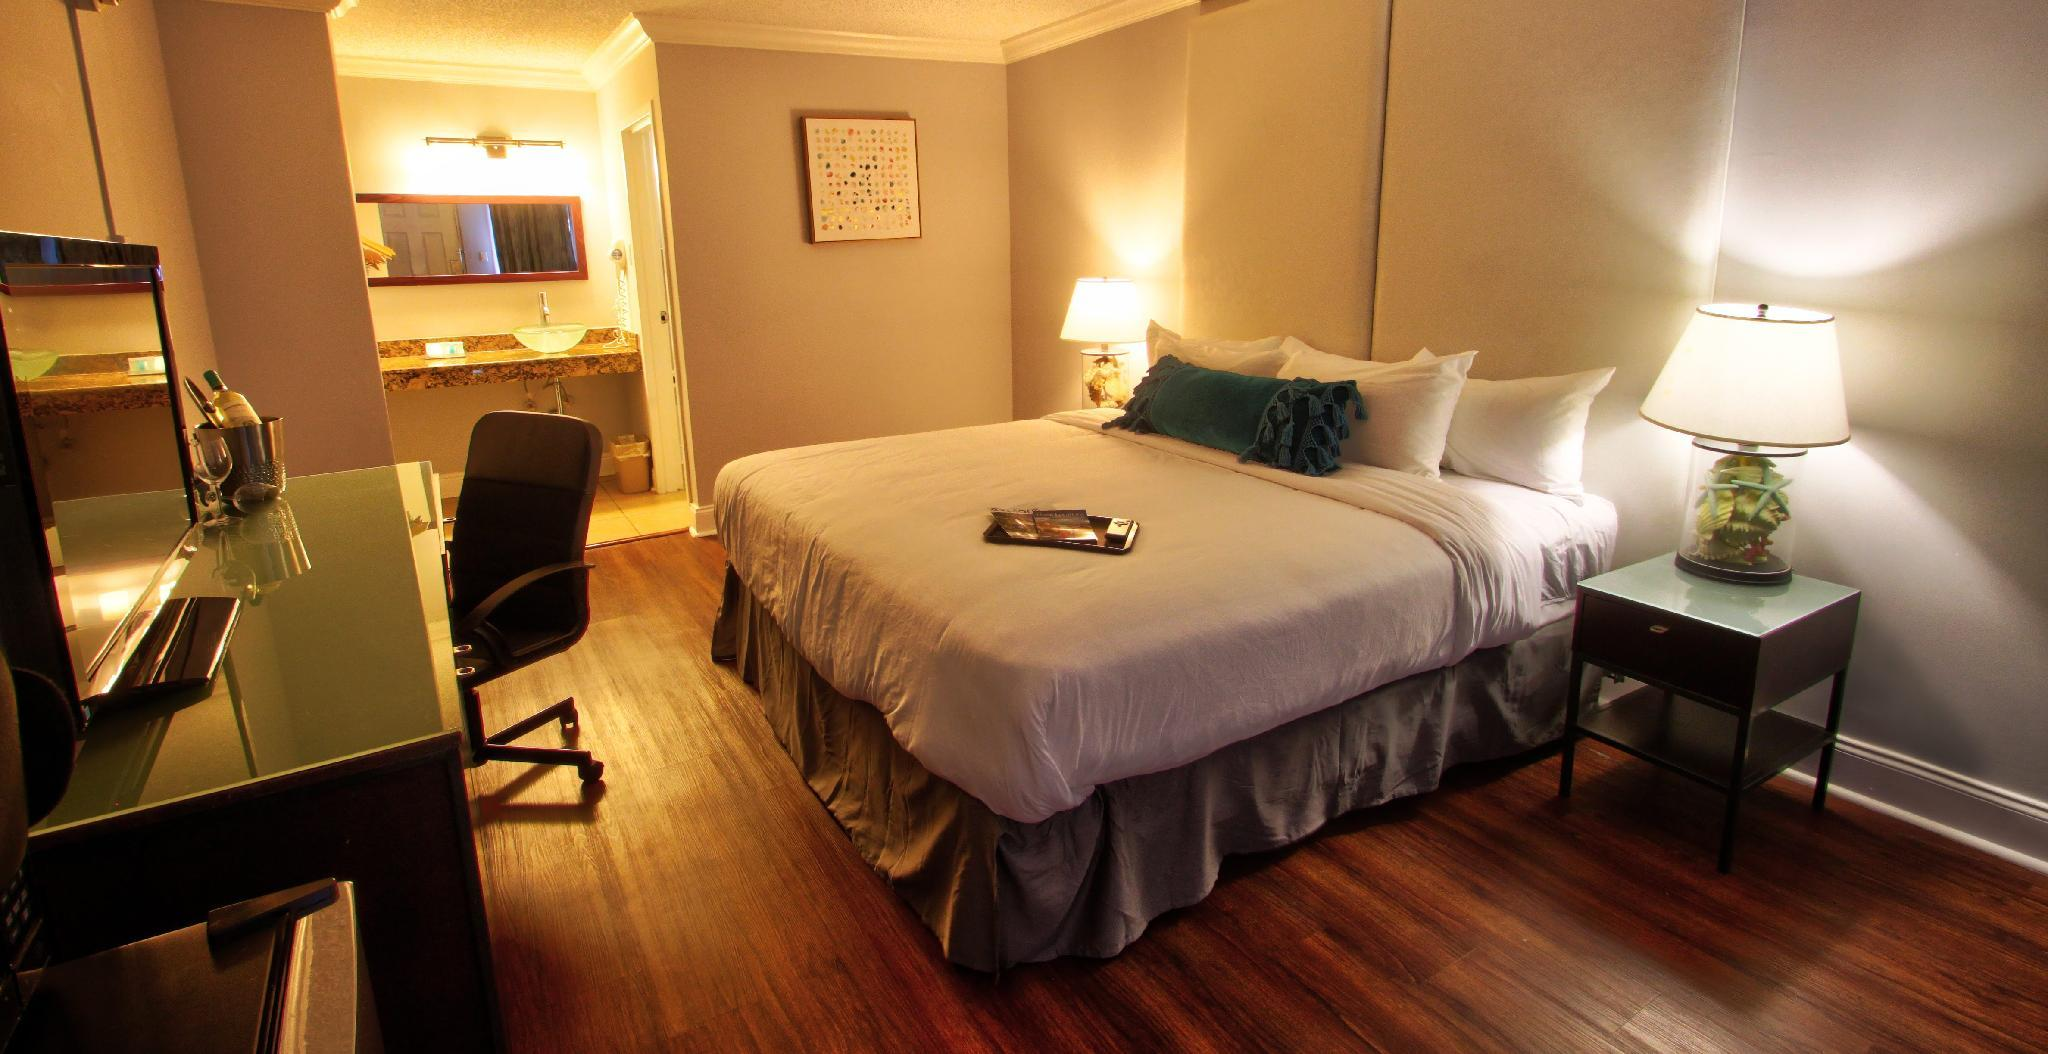 Fort Lauderdale Grand Hotel In Fort Lauderdale Fl Room Deals Photos Reviews